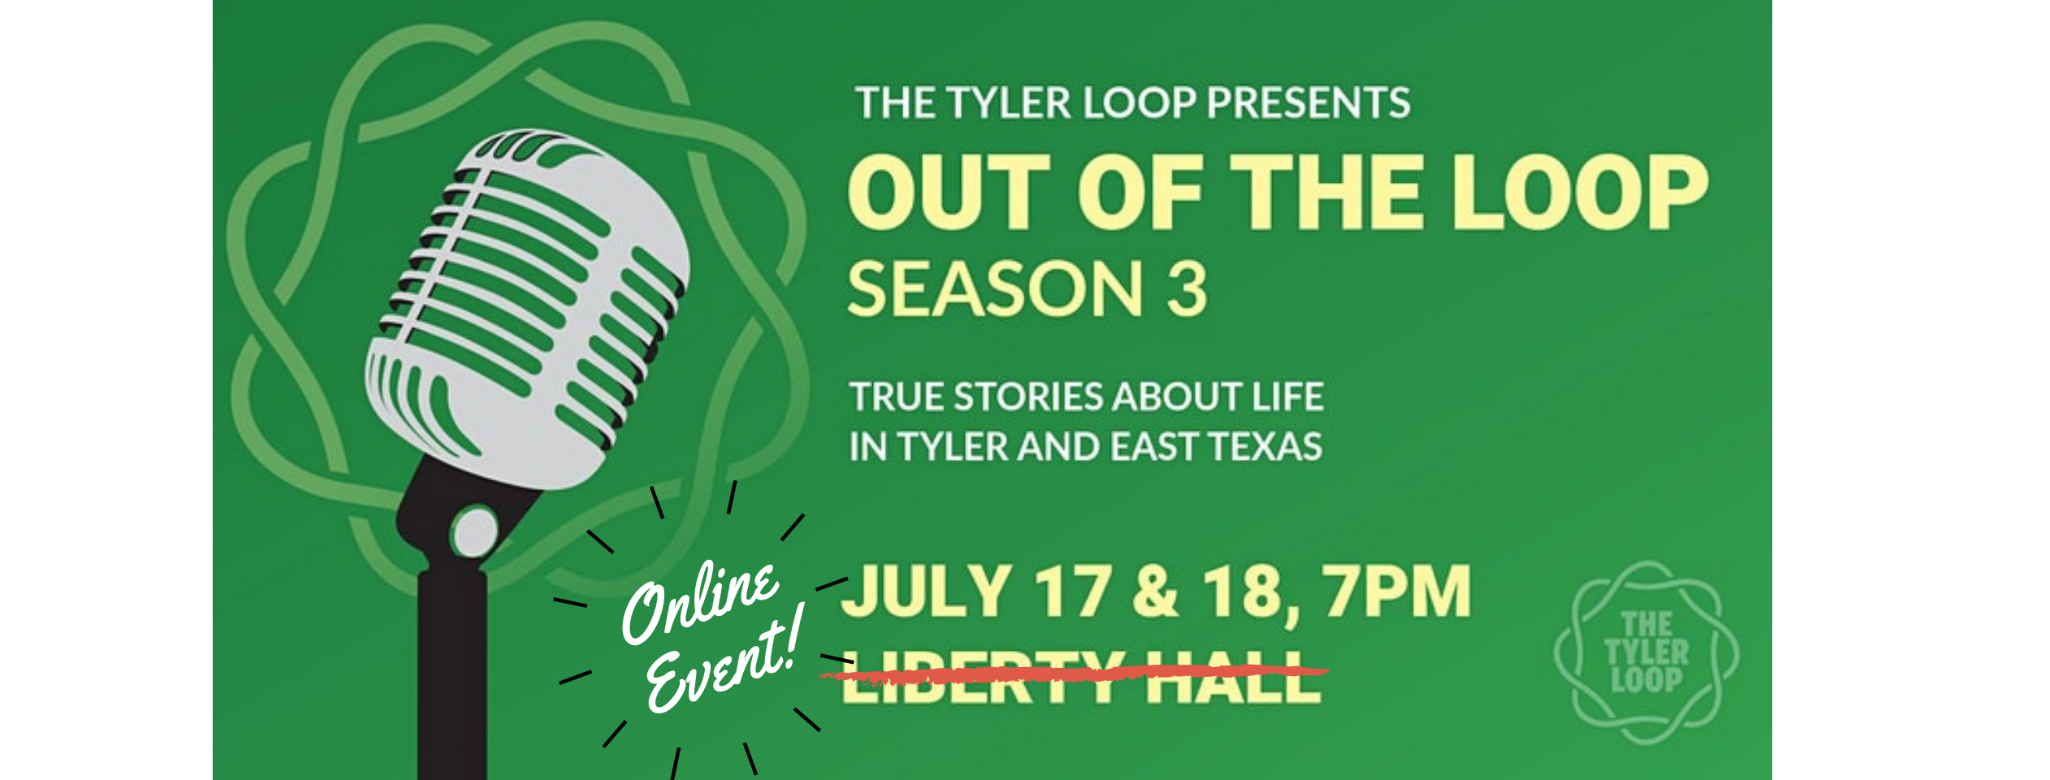 Get Tickets For Out Of The Loop Season 3 The Tyler Loop